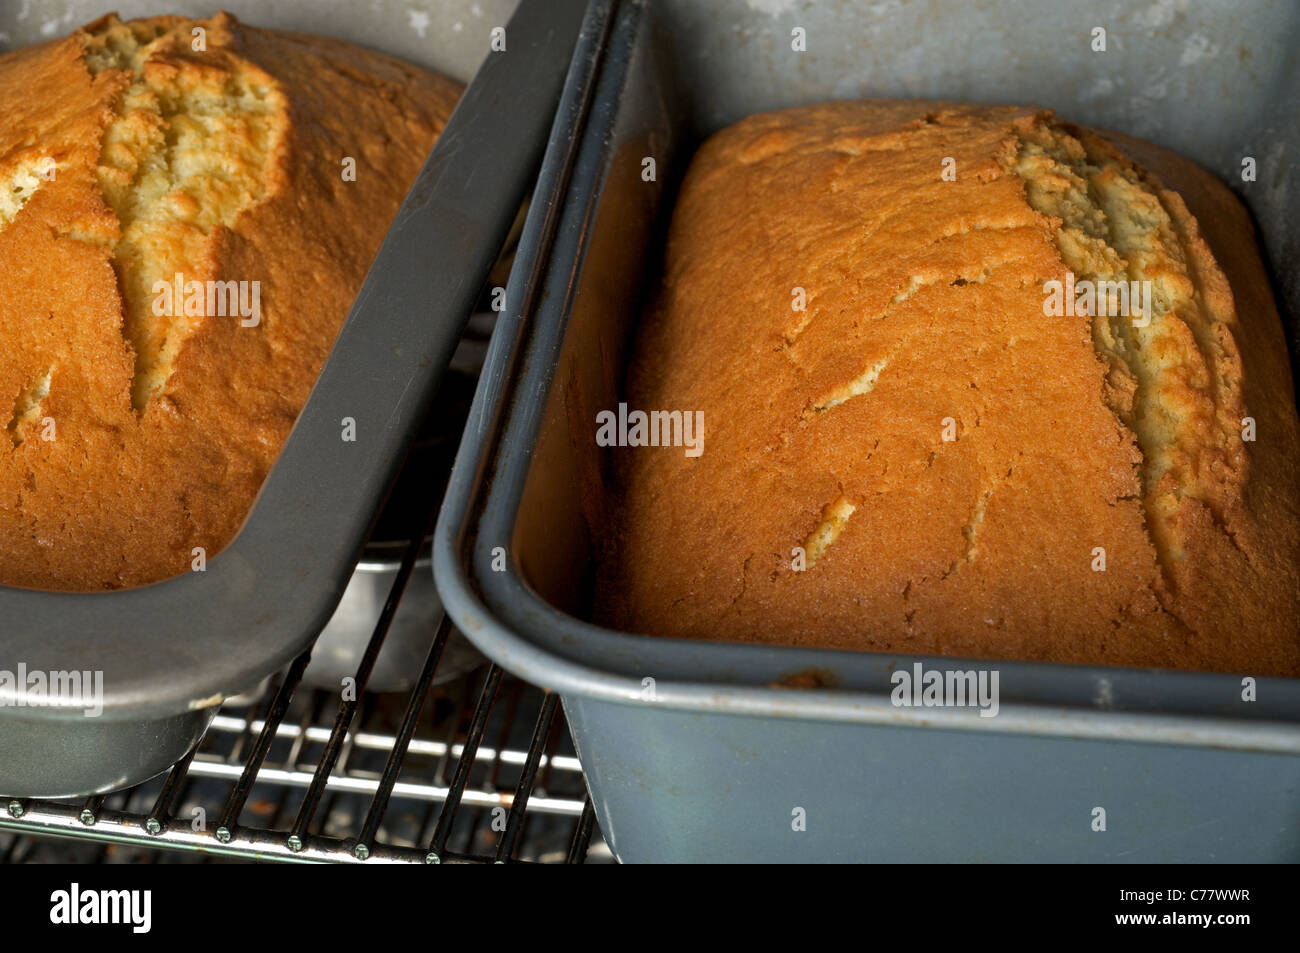 Homemade cakes baked in oven - Stock Image